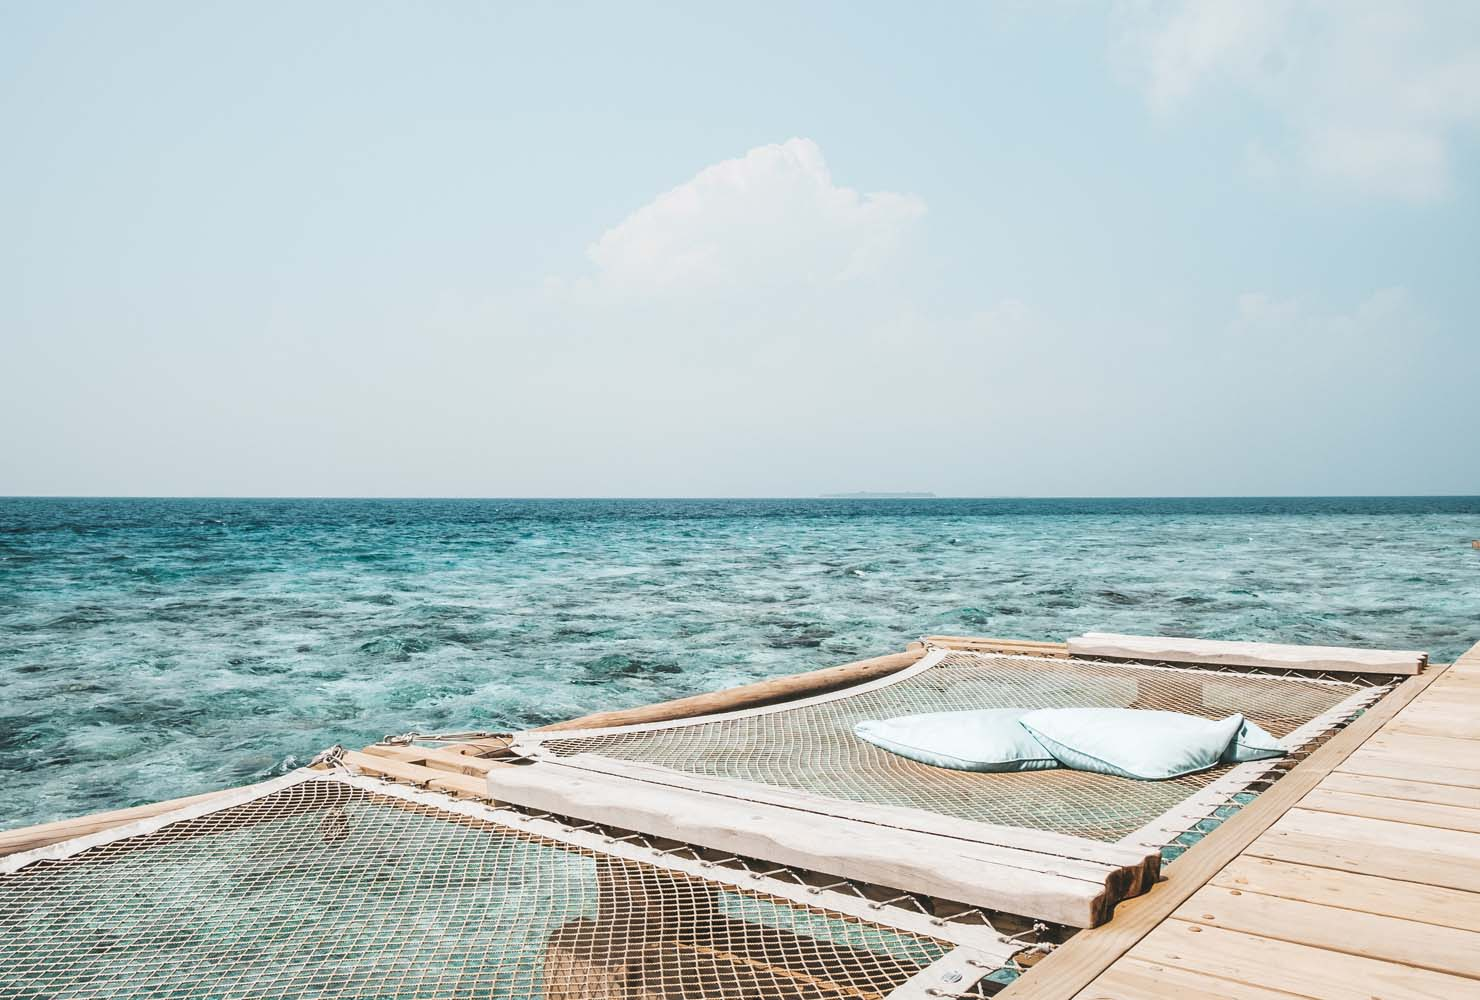 Looking for eco-friendly luxury in the Maldives? Check out Soneva Fushi, a Maldives luxury resort and the original barefoot hotel that is leading the way of sustainable tourism.